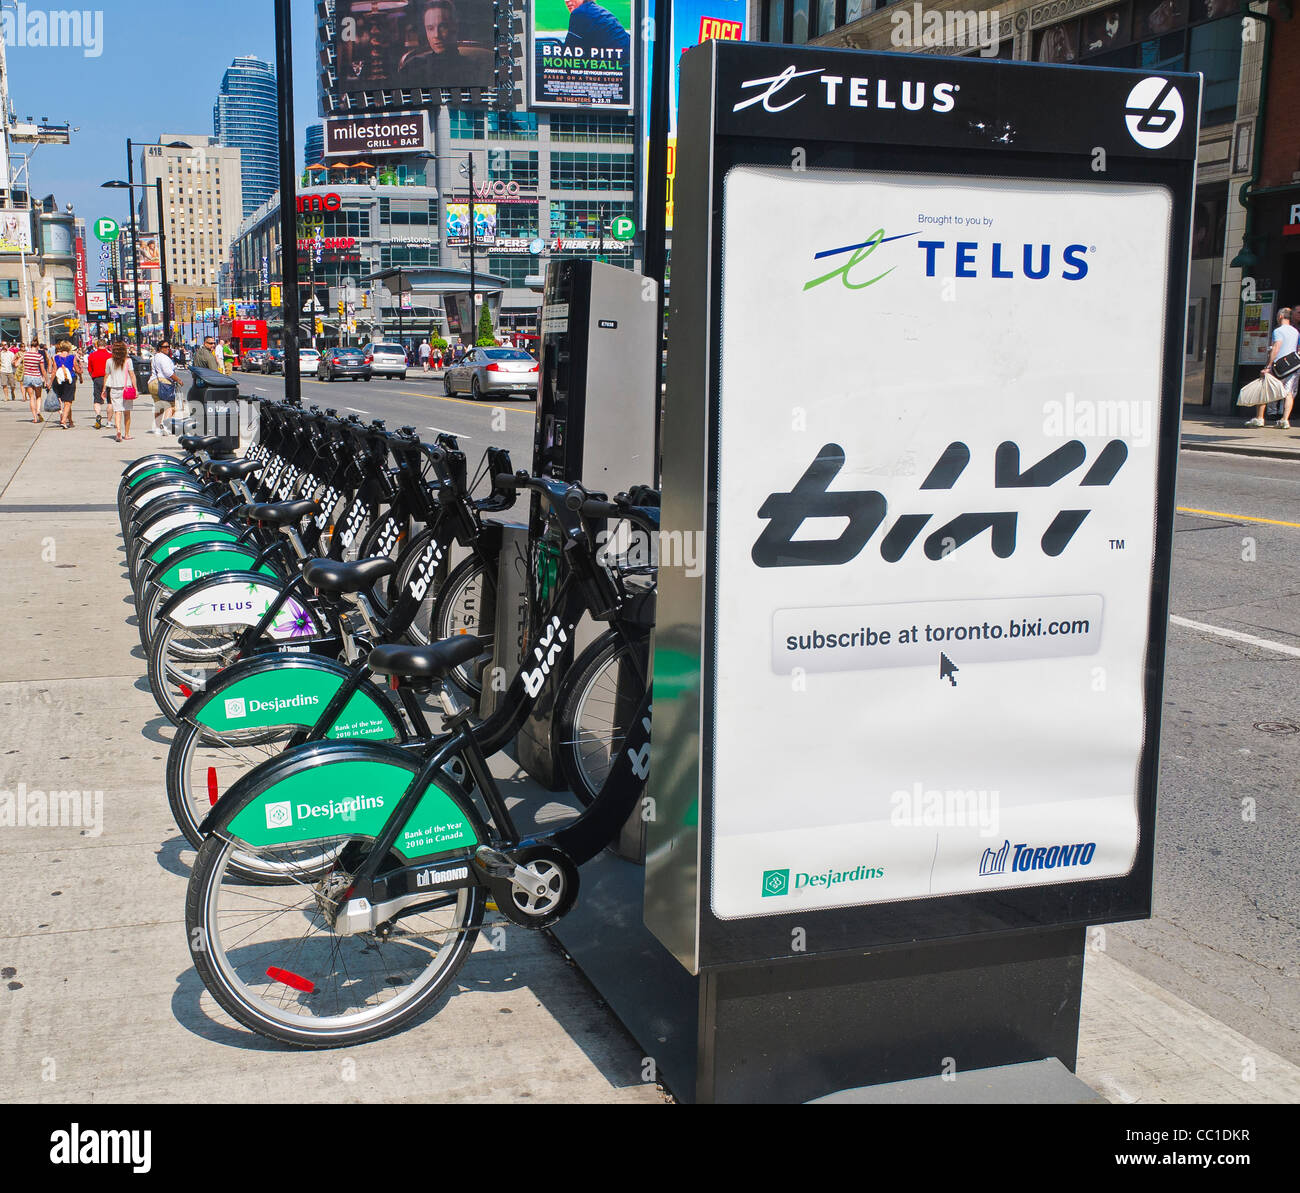 BIXI Public bicycles Docking Terminal on Yonge Street in Toronto, Ontario. - Stock Image